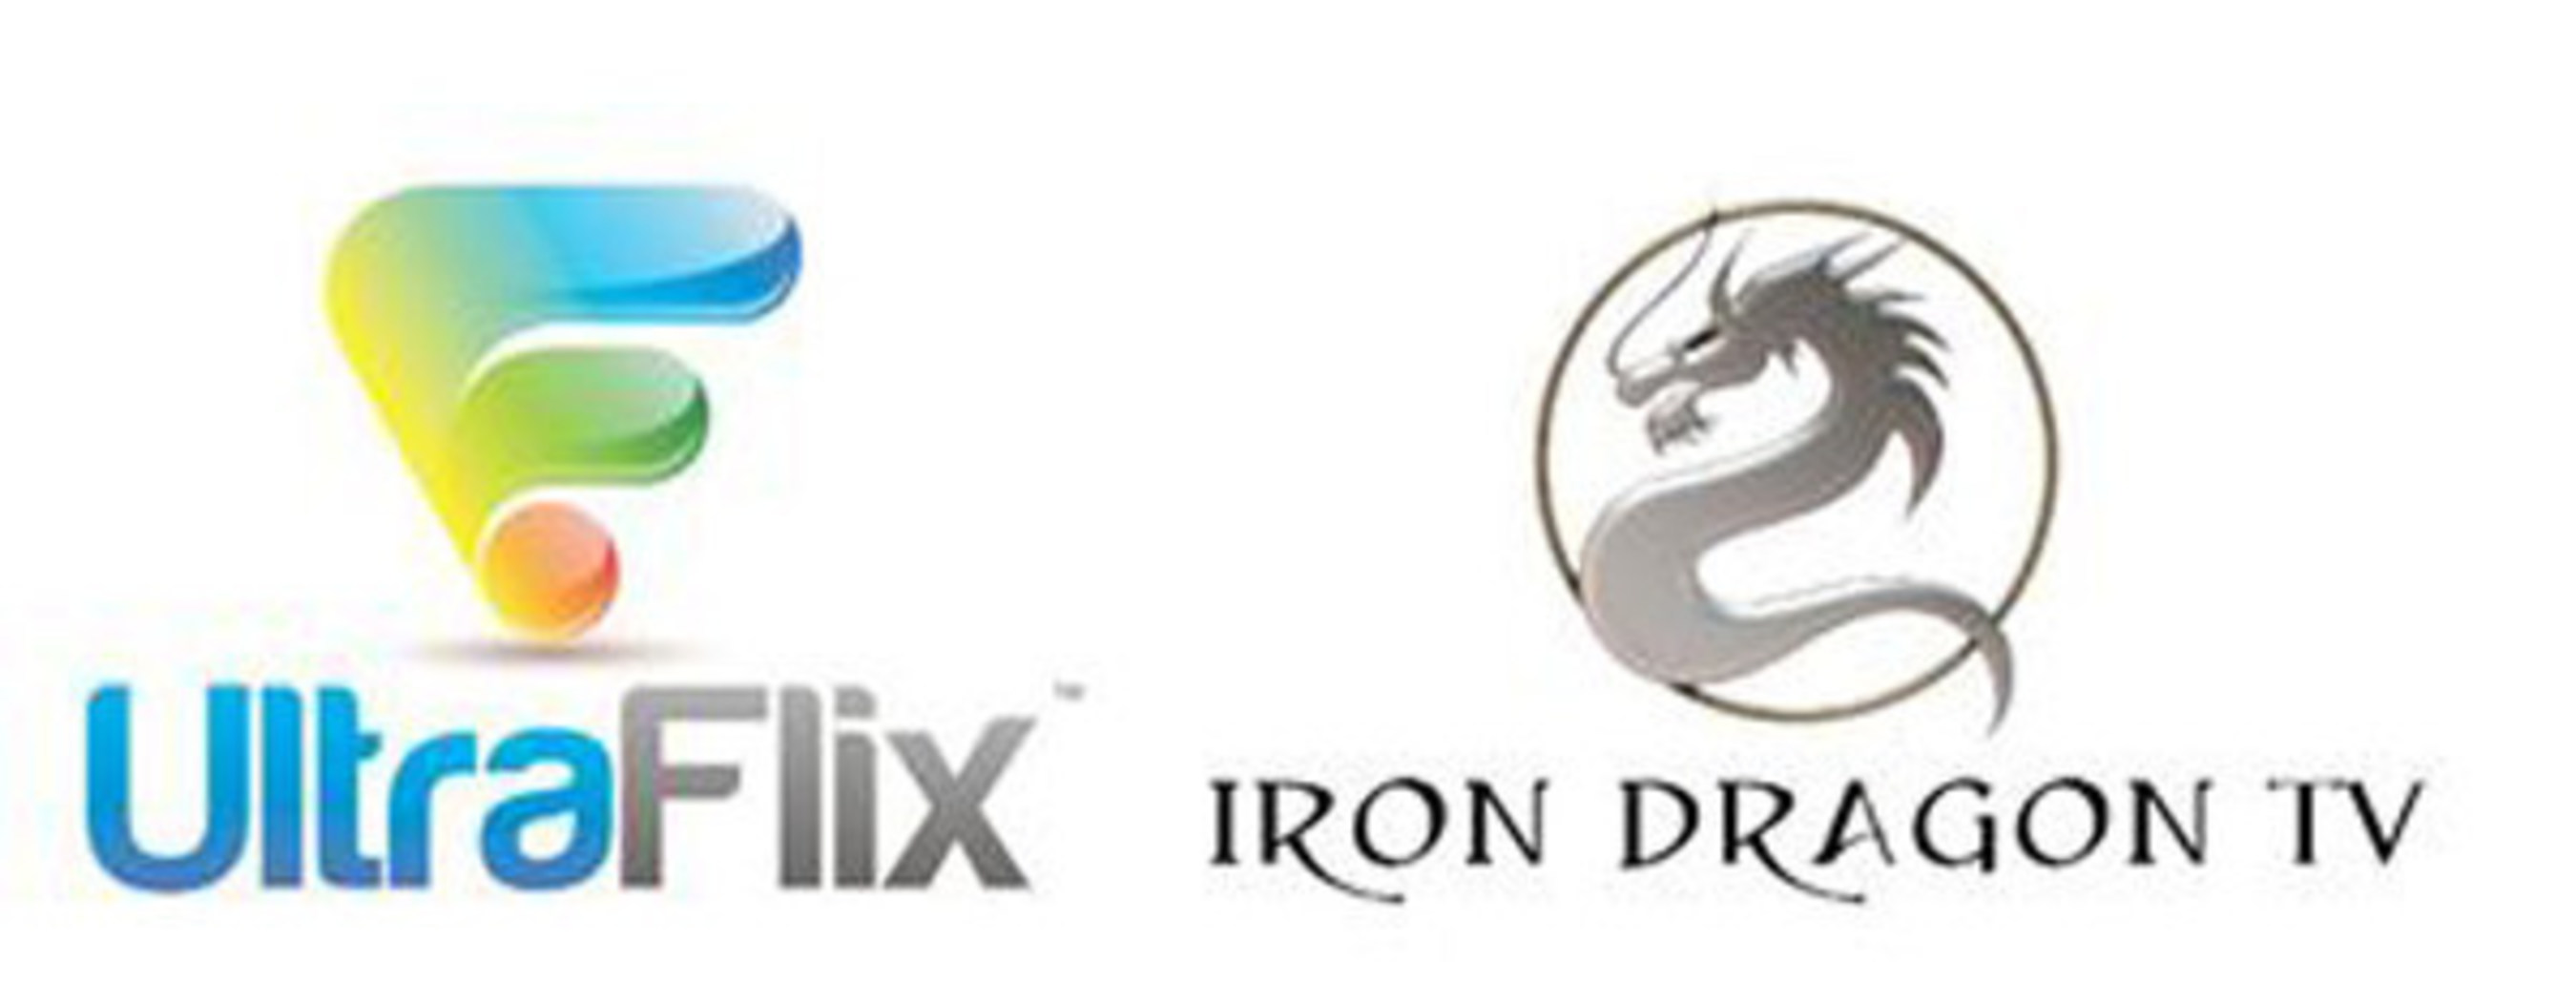 """In conjunction with Well Go USA, NanoTech's Iron Dragon TV will be hosting a cinematic viewing of """"Brotherhood of Blades"""" at the Violet Crown Theatre in Austin, Texas on February 24th at 9:00 PM."""